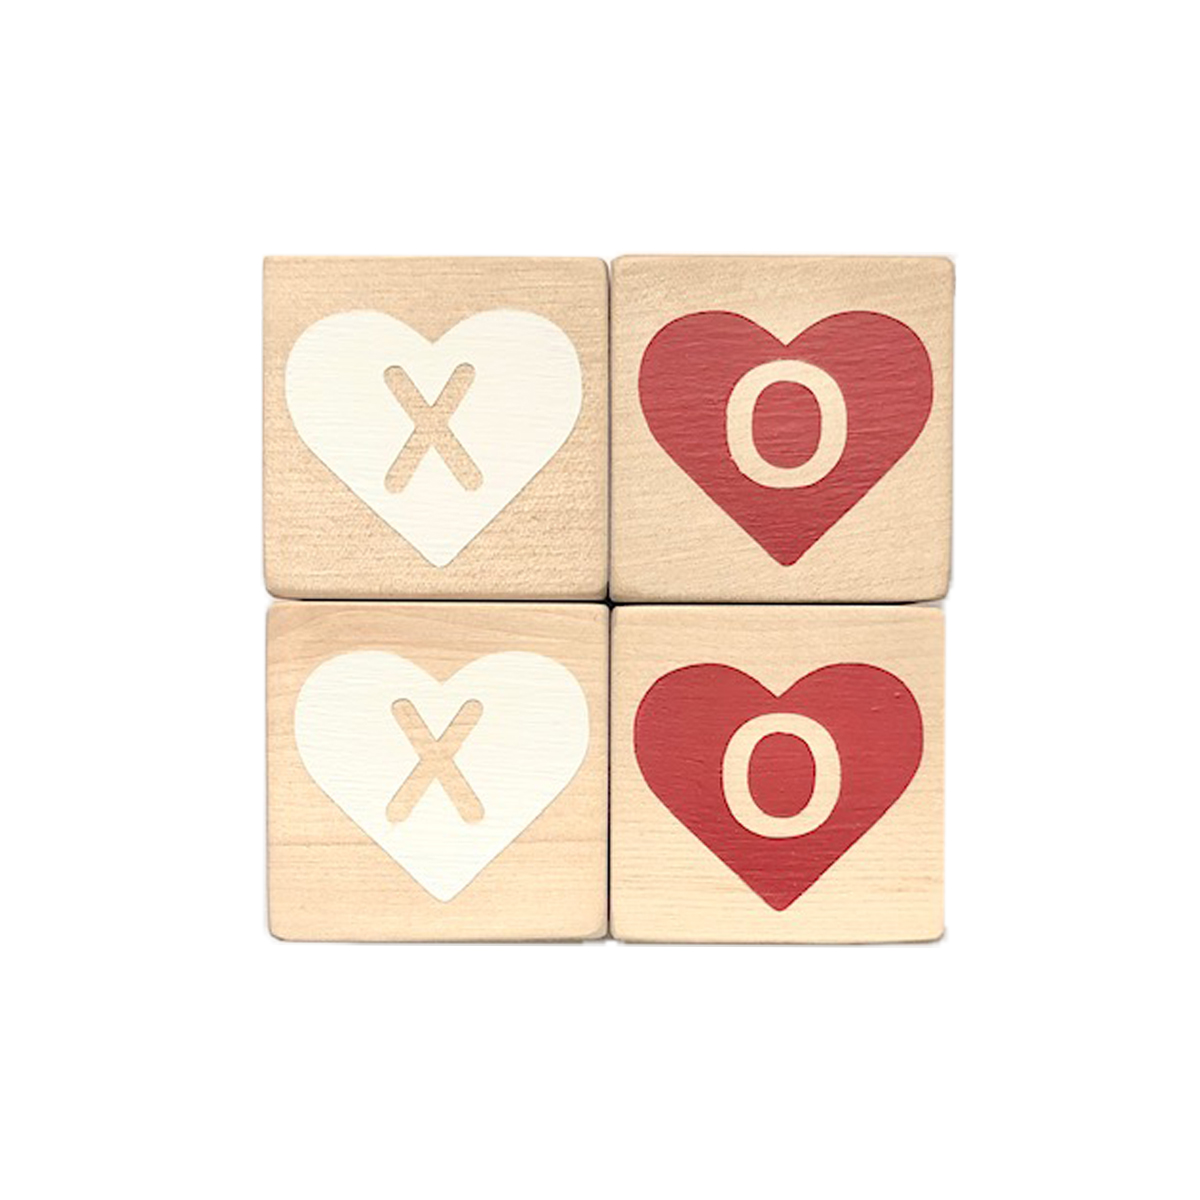 Modern Blocks Hearts Xoxo Block Set of 4